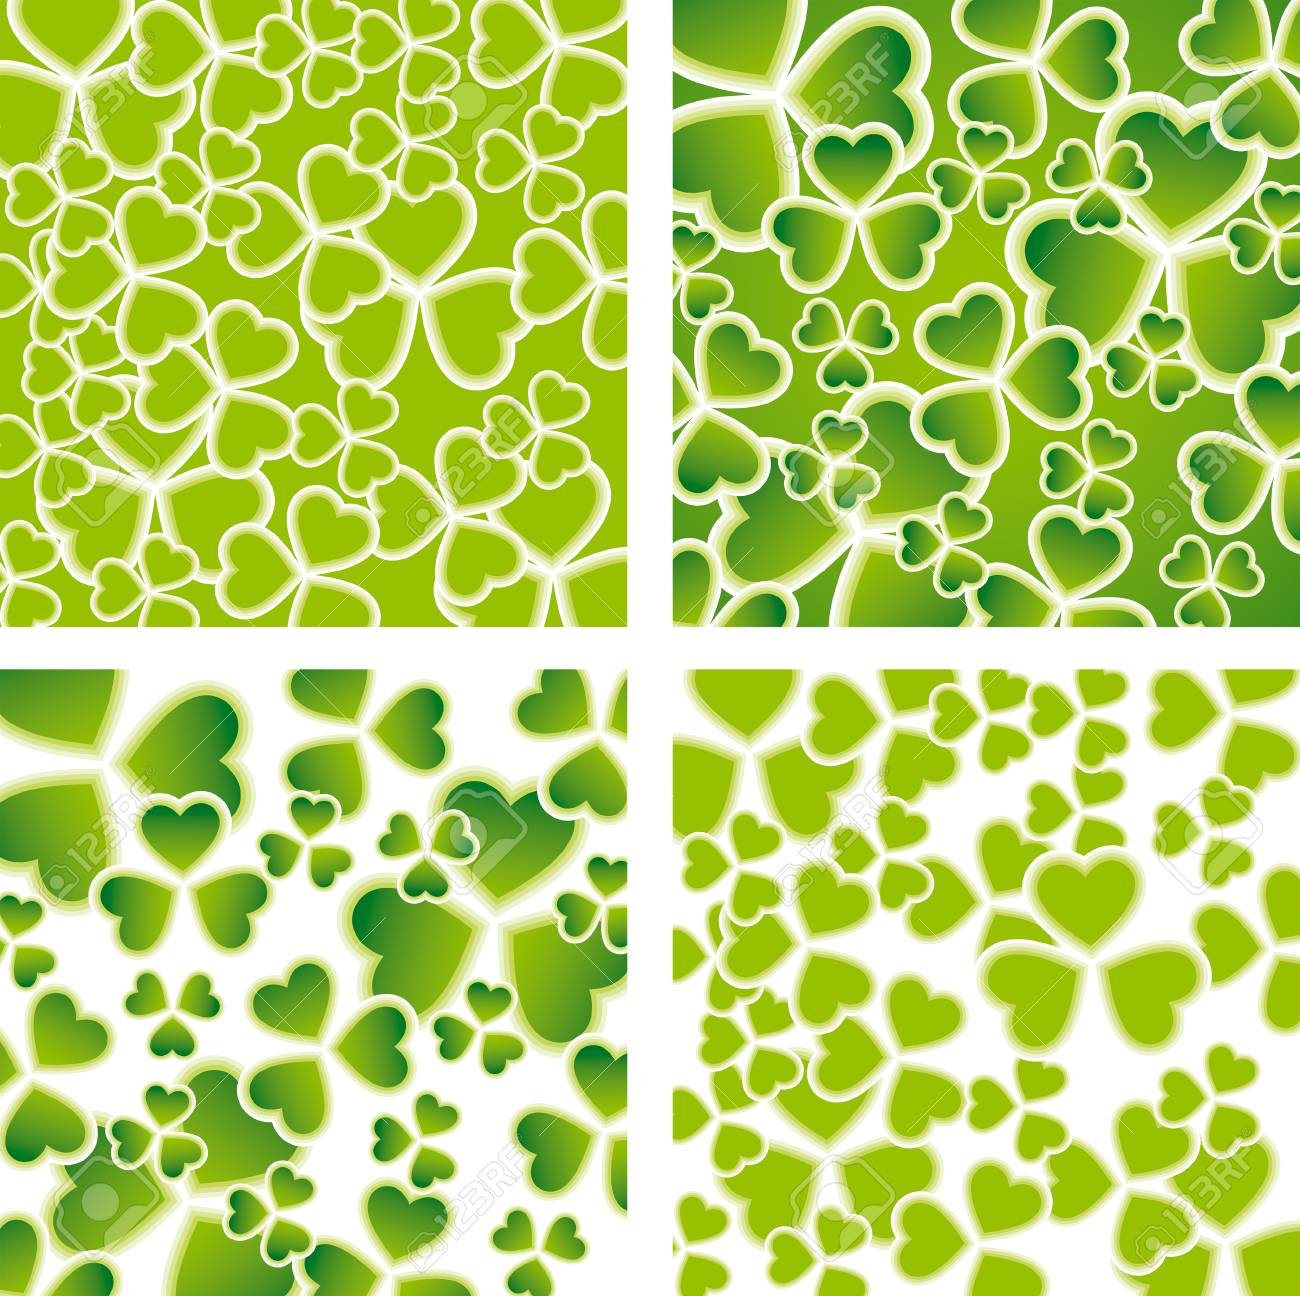 st patrick s day backgrounds royalty free cliparts vectors and